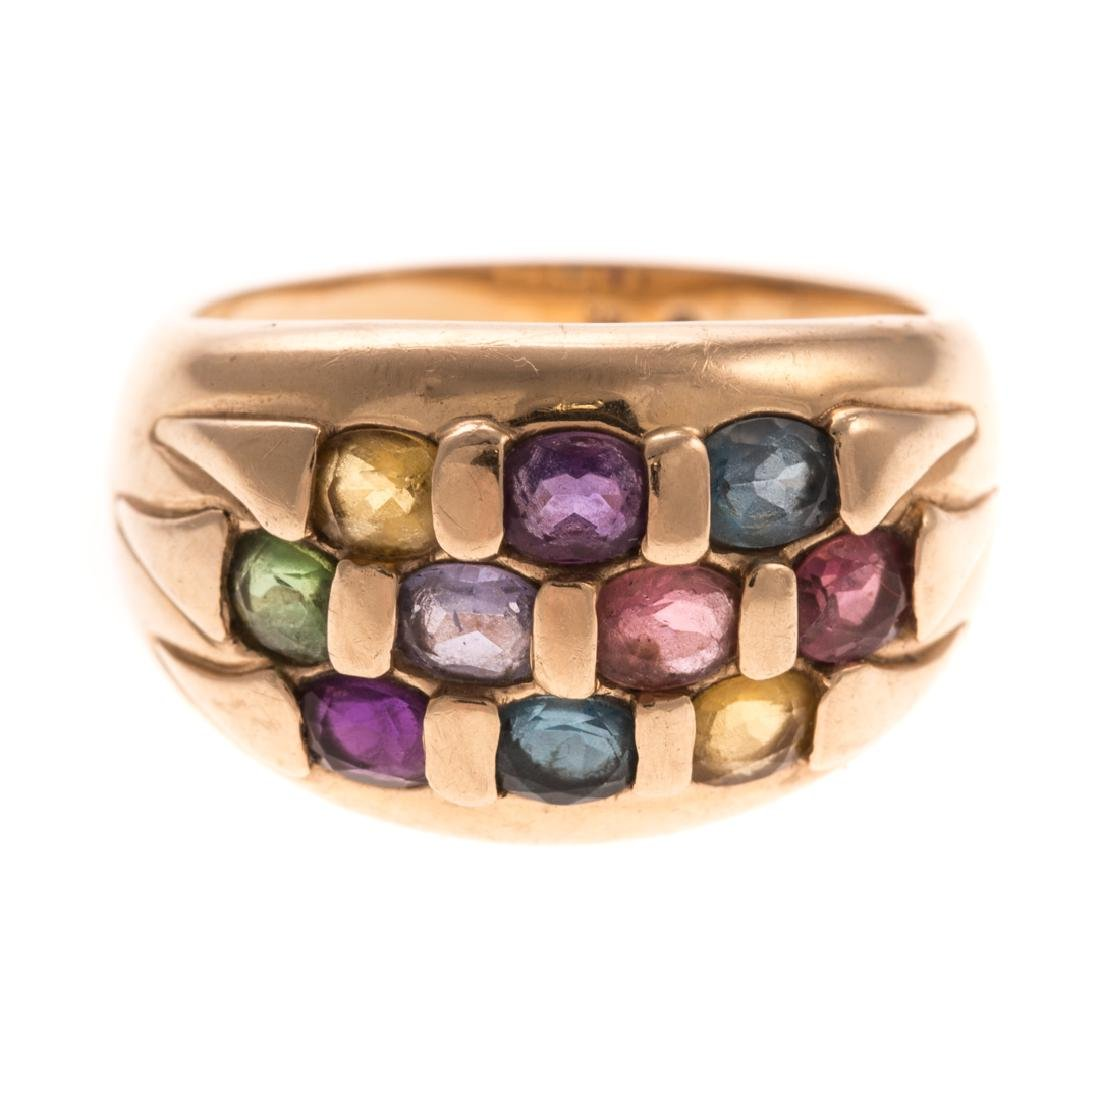 A Lady's Multi Gemstone Ring in 14K Gold